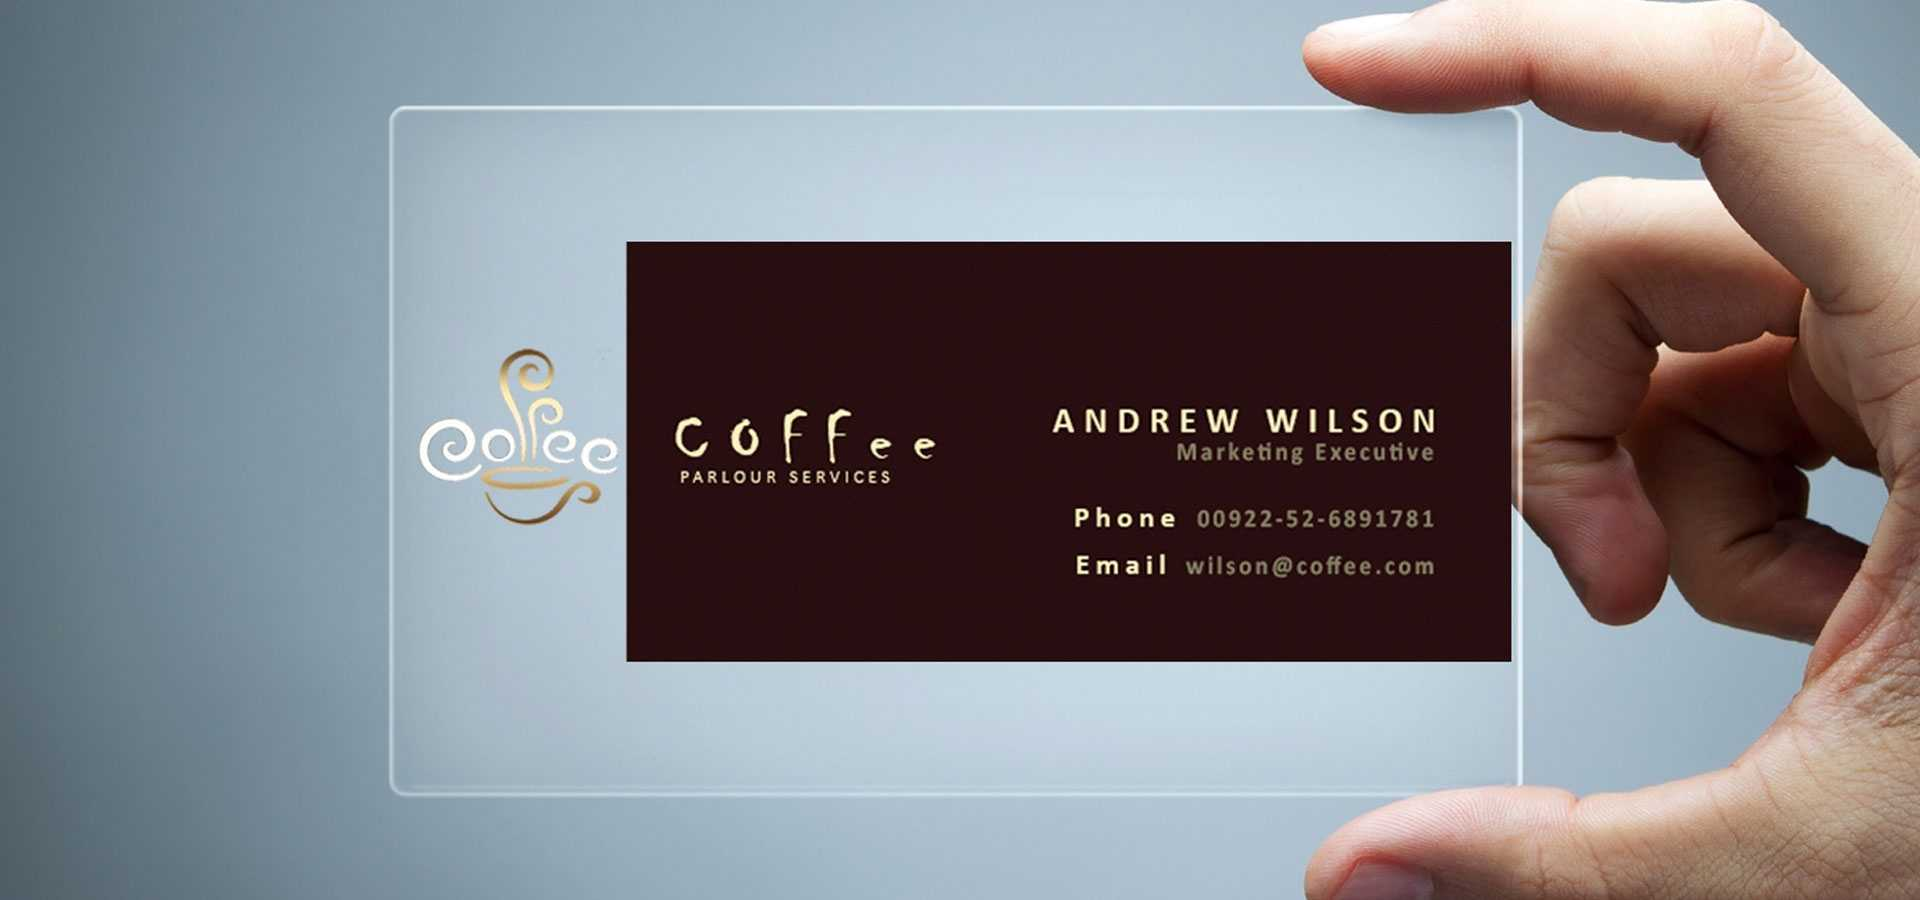 26+ Transparent Business Card Templates - Illustrator, Ms For Microsoft Templates For Business Cards